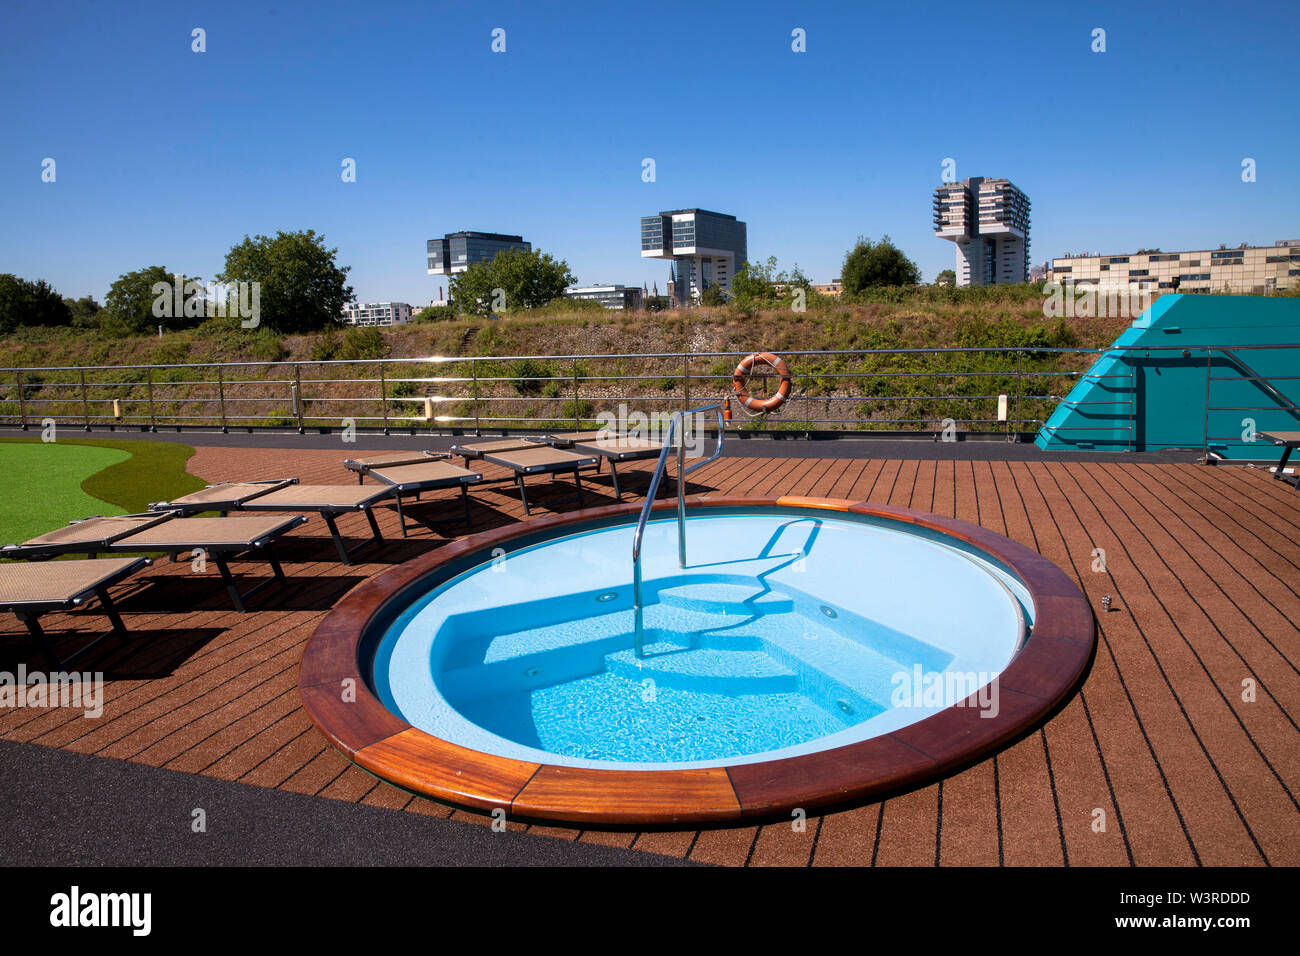 whirlpool of a cruise ship, view to the Crane Houses at the Rheinau harbor, Cologne, Germany.  Whirlpool eines Kreuzfahrtschiffes, Blick zu den Kranha - Stock Image